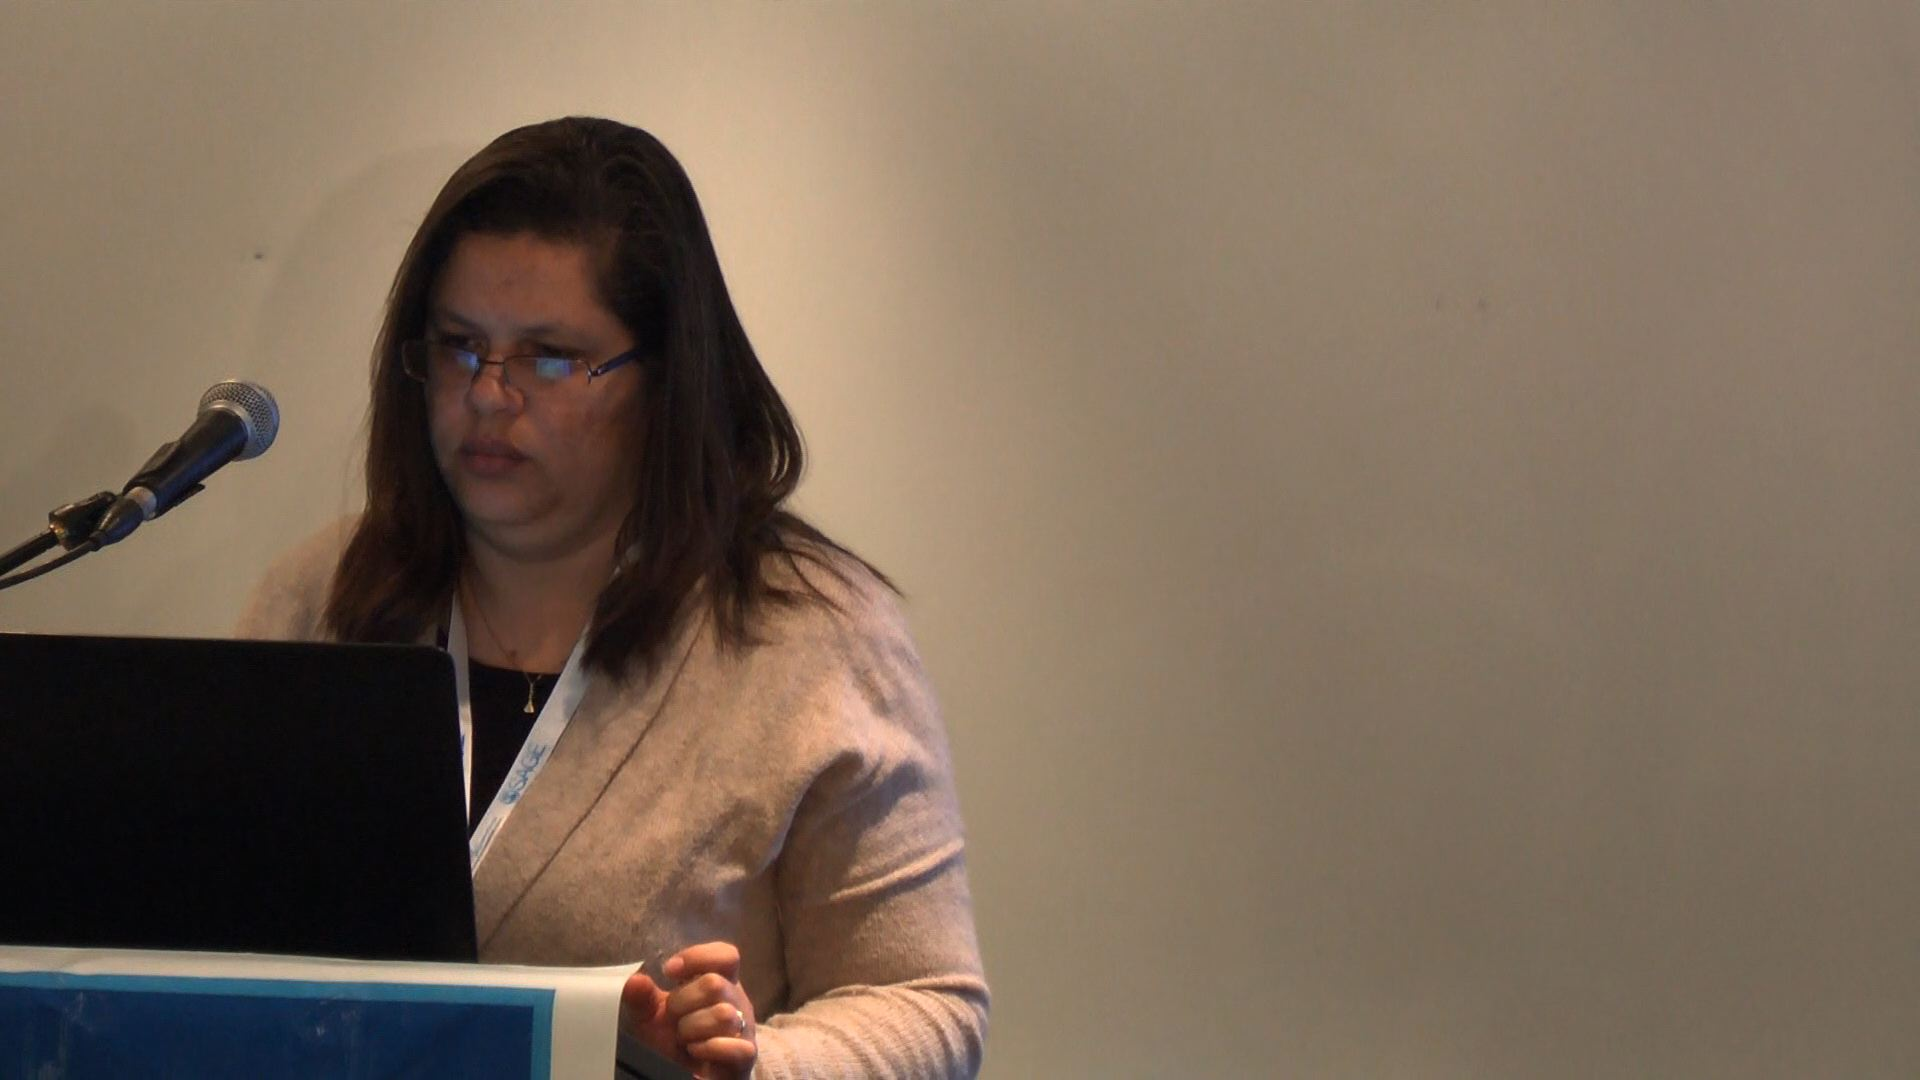 gisele-monteiro-de-souza-university-of-sao-paulo-cancer-summit-2015-australia-omics-international-1439376025.jpg